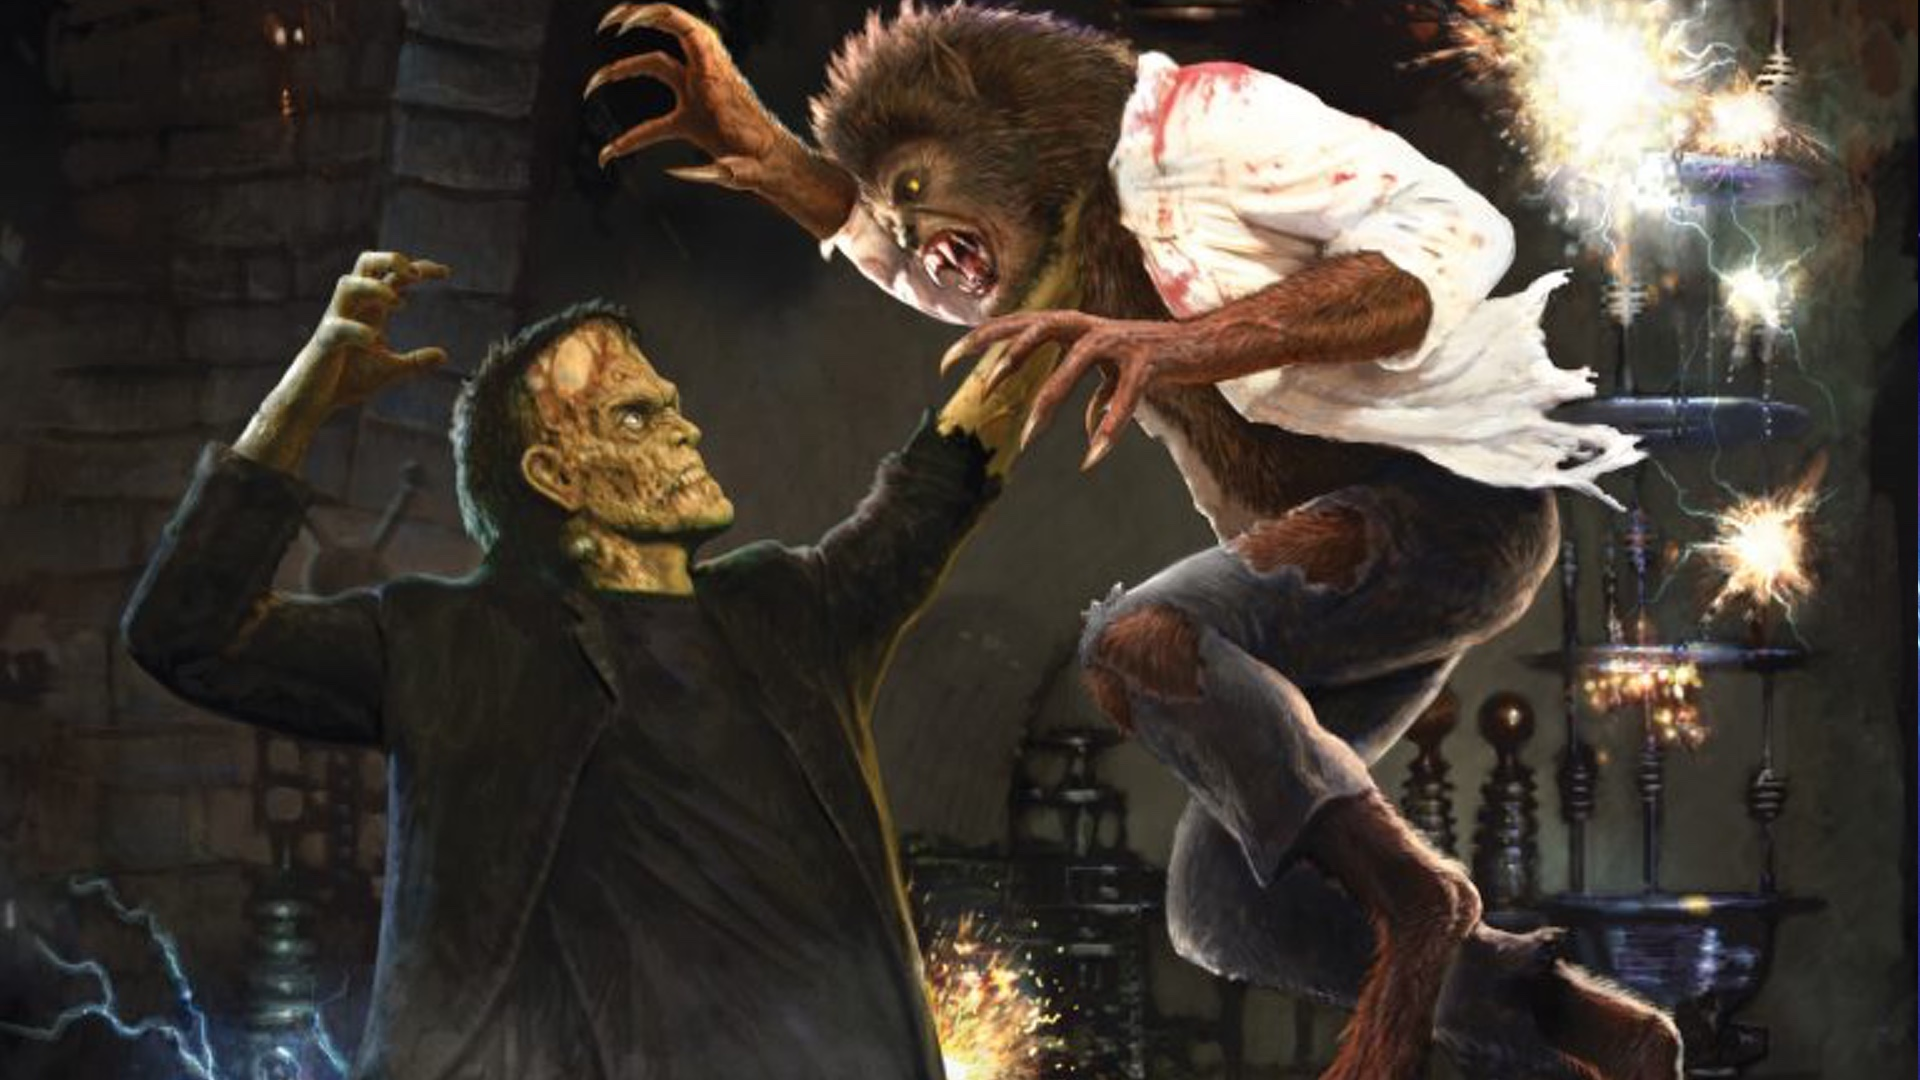 Frankenstein Meets The Wolfman And Other Universal Monster Themed